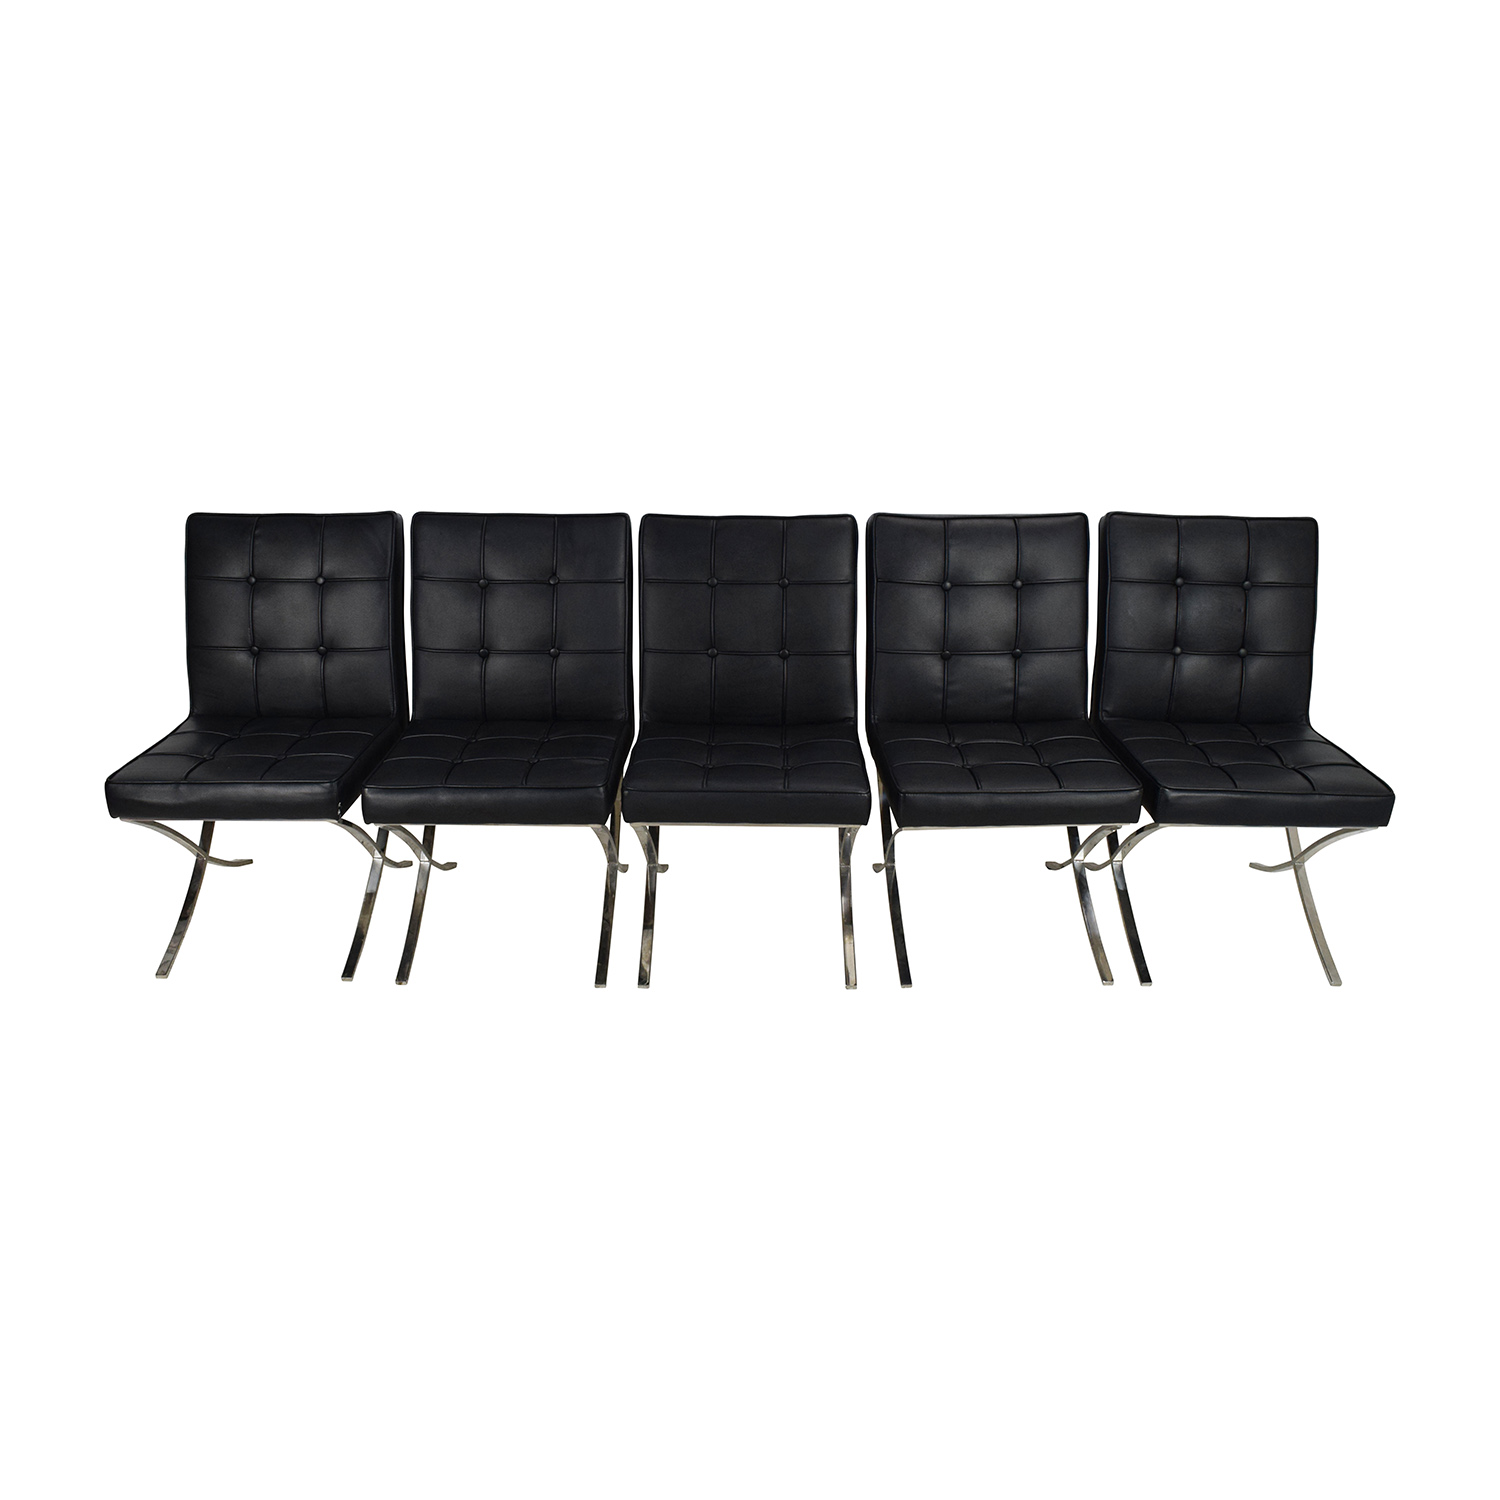 Black Leather Conference Room Chair Set